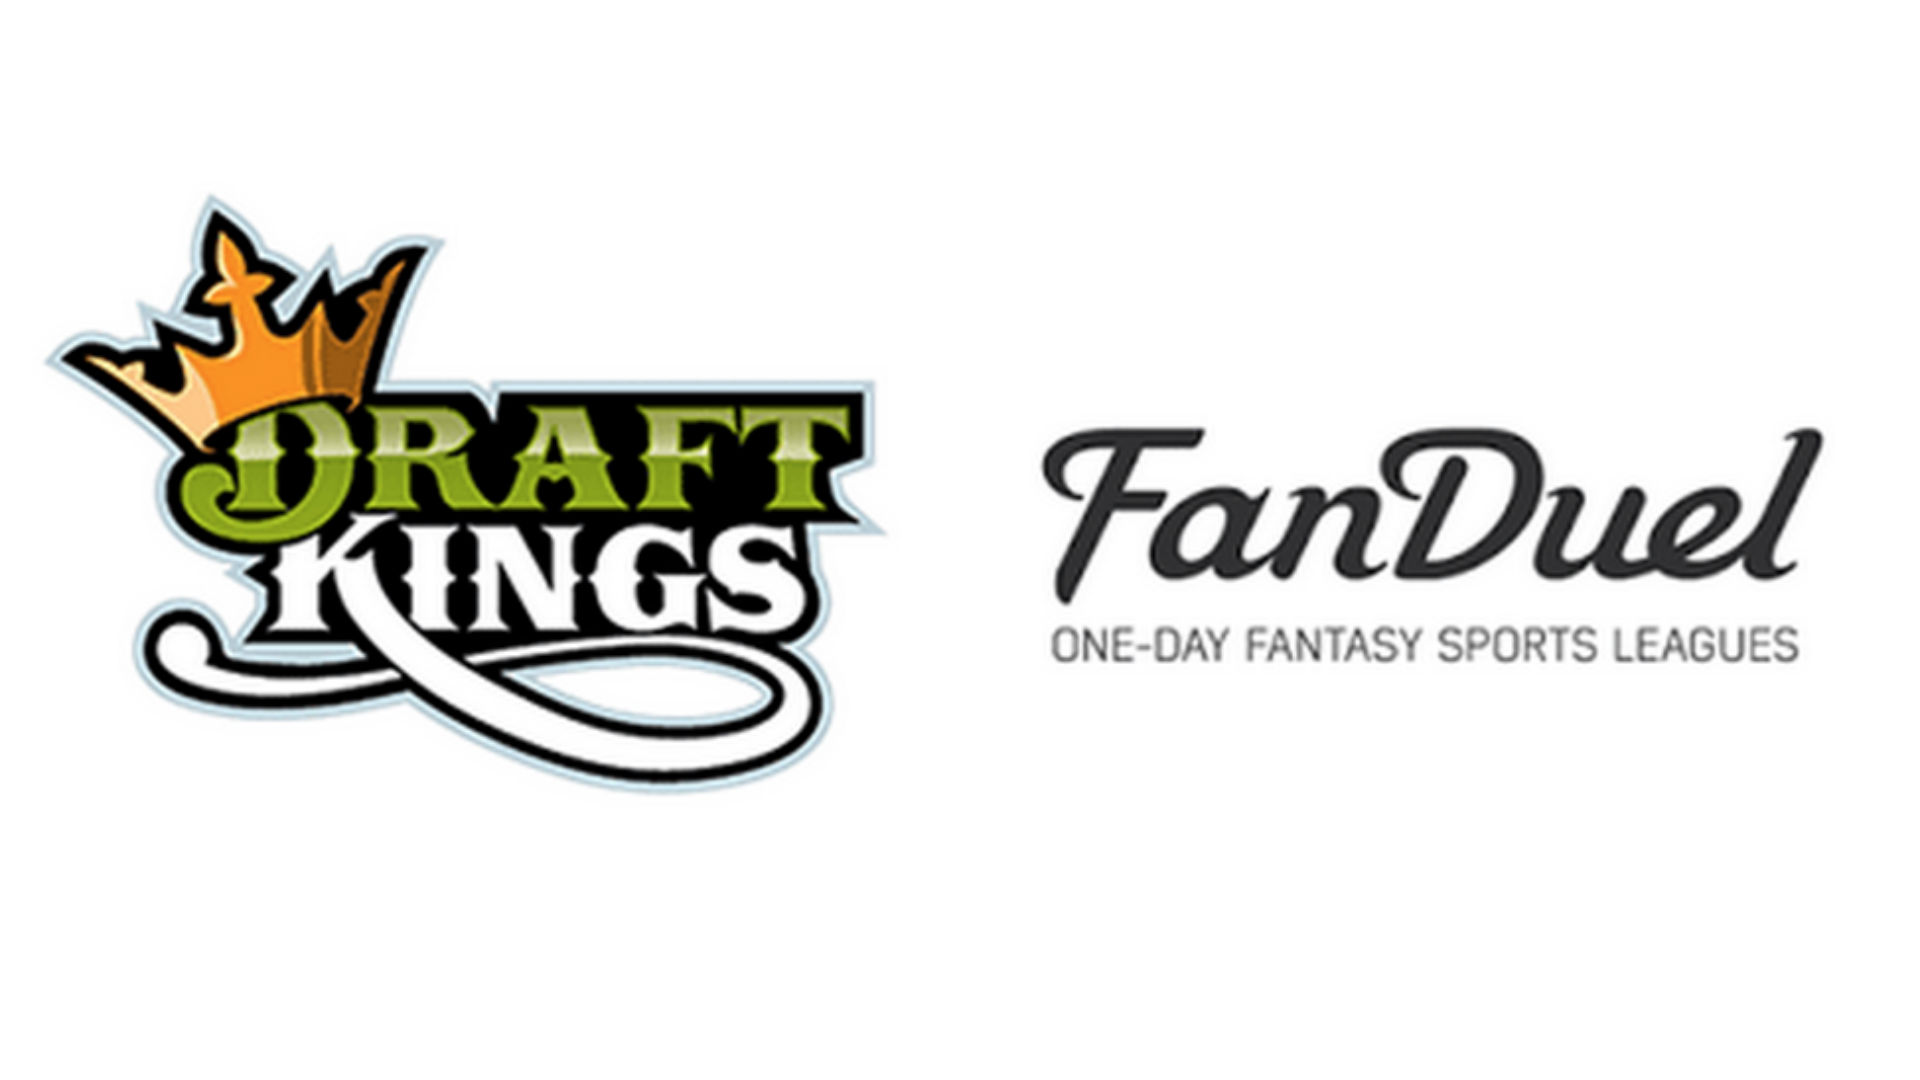 FTC moves to block DraftKings-FanDuel merger